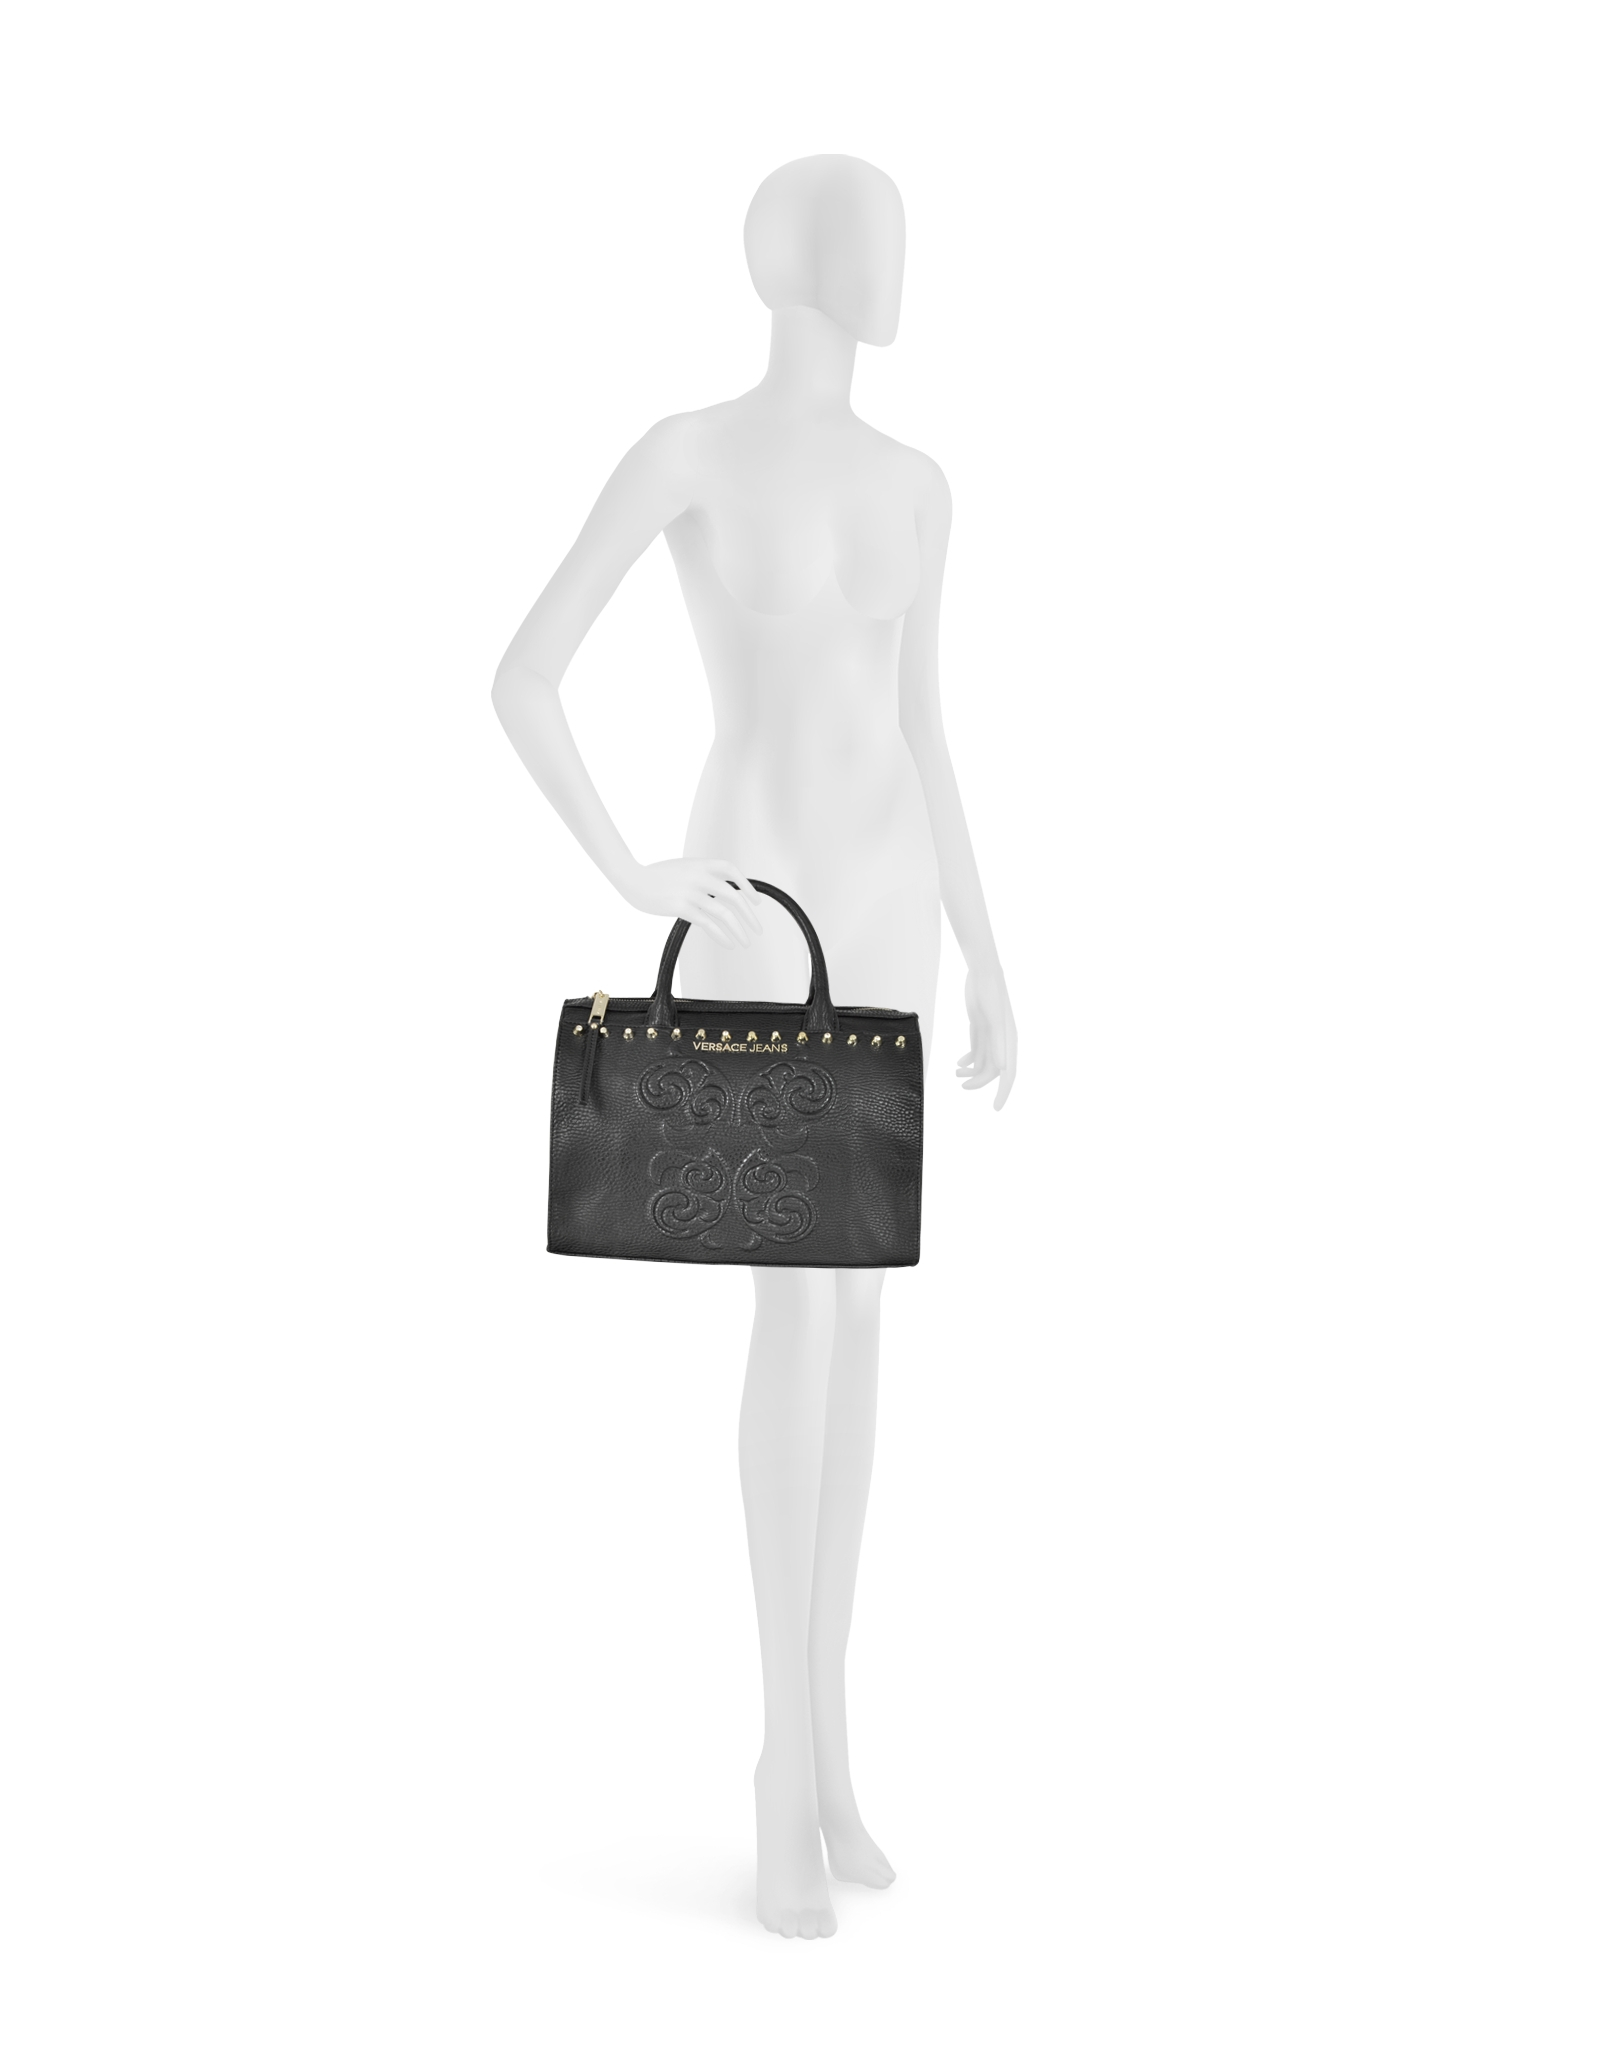 8d3a552104f07 Lyst - Versace Jeans Black Studded and Embroidered Eco-leather ...